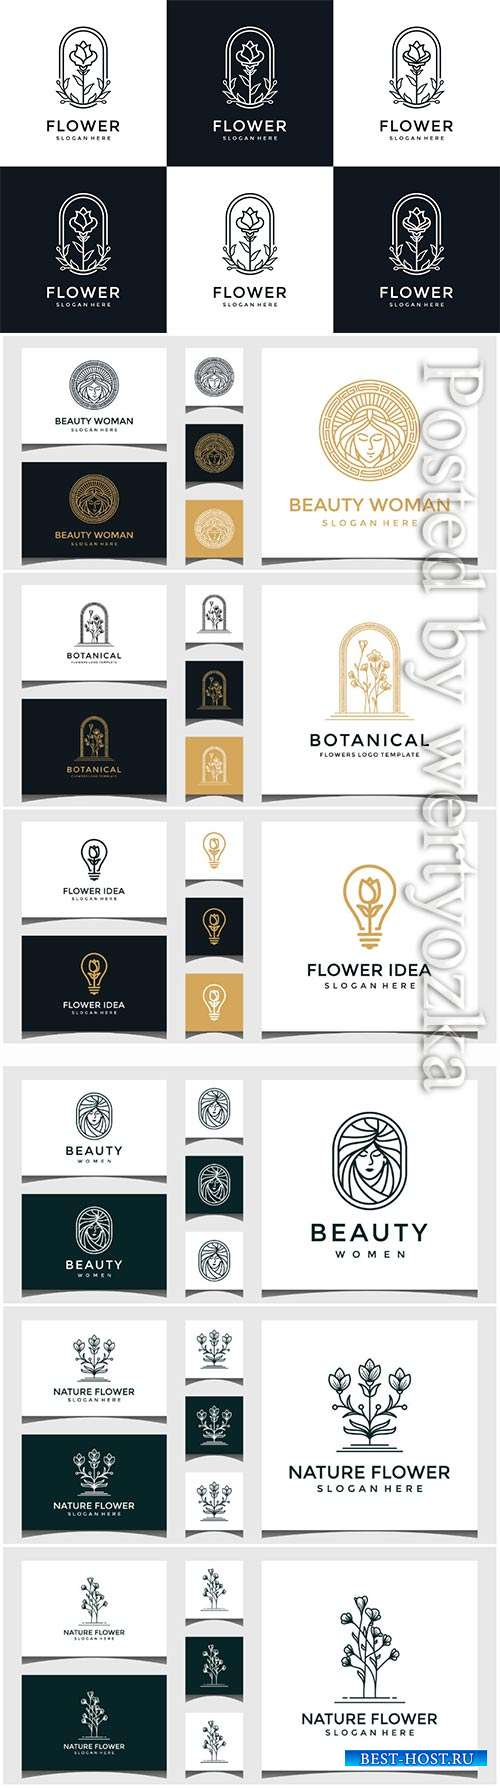 Set of flower logo design in line art style